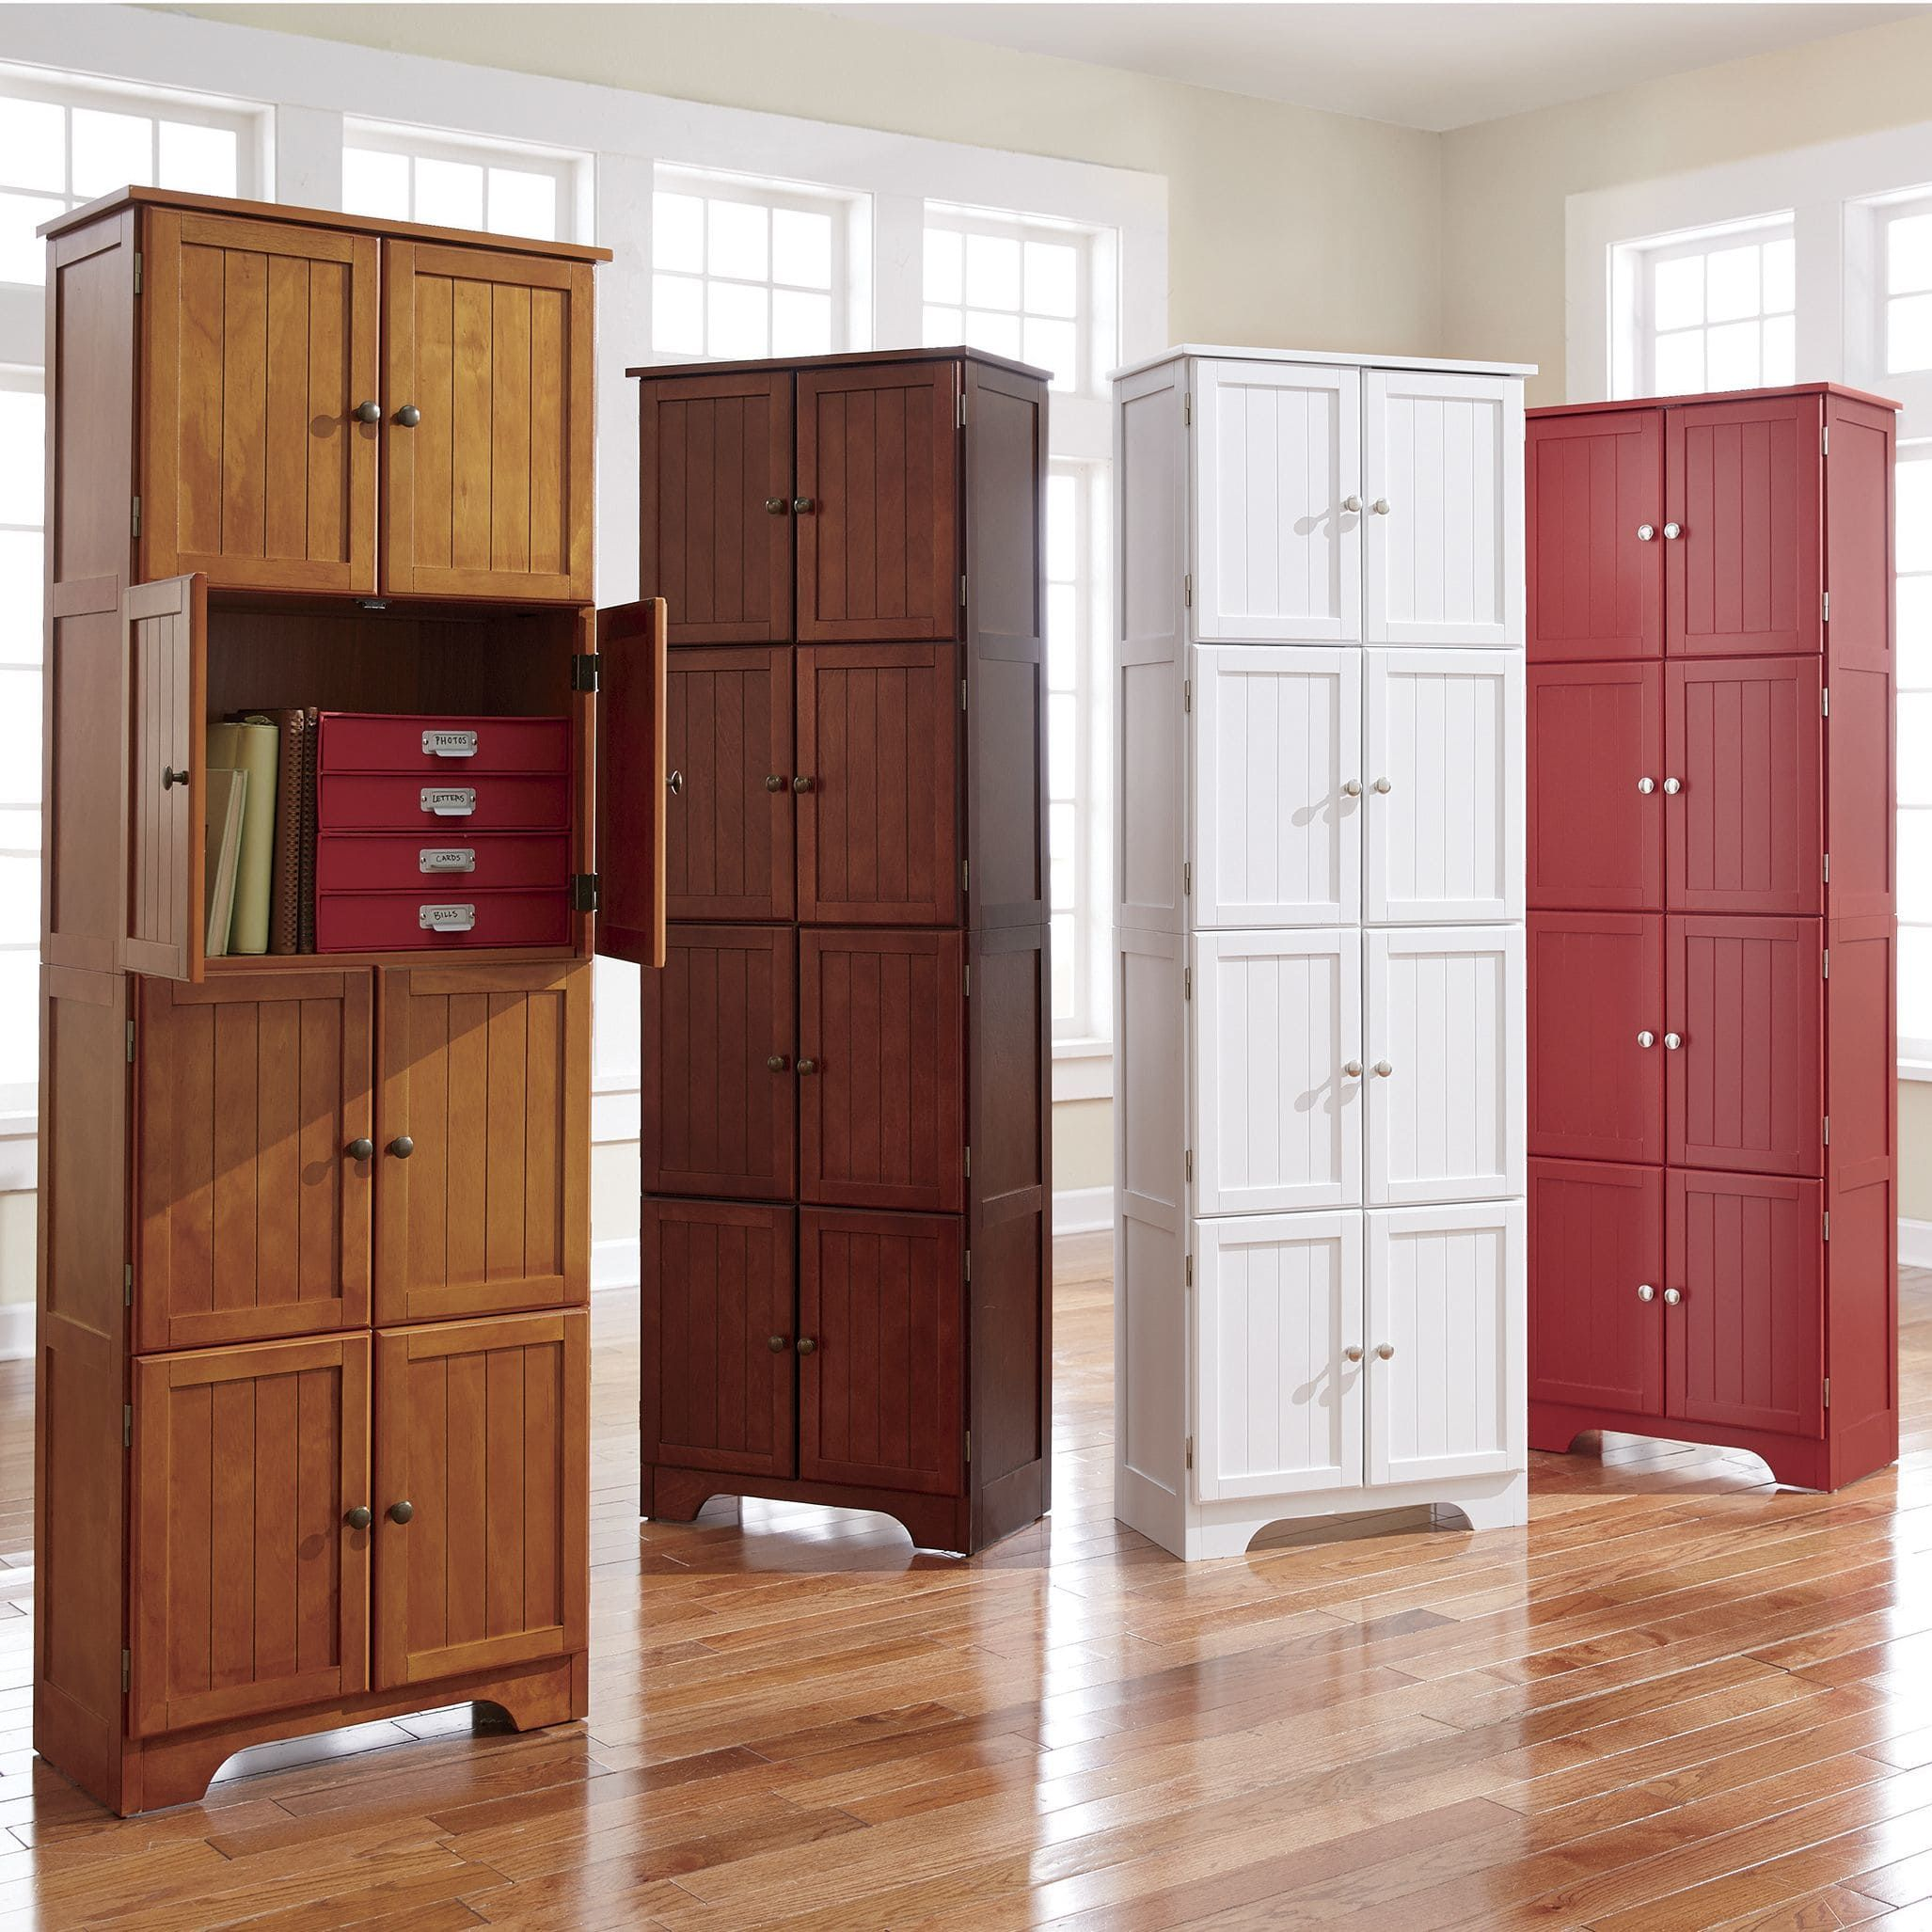 19+ Living room cabinets with doors info